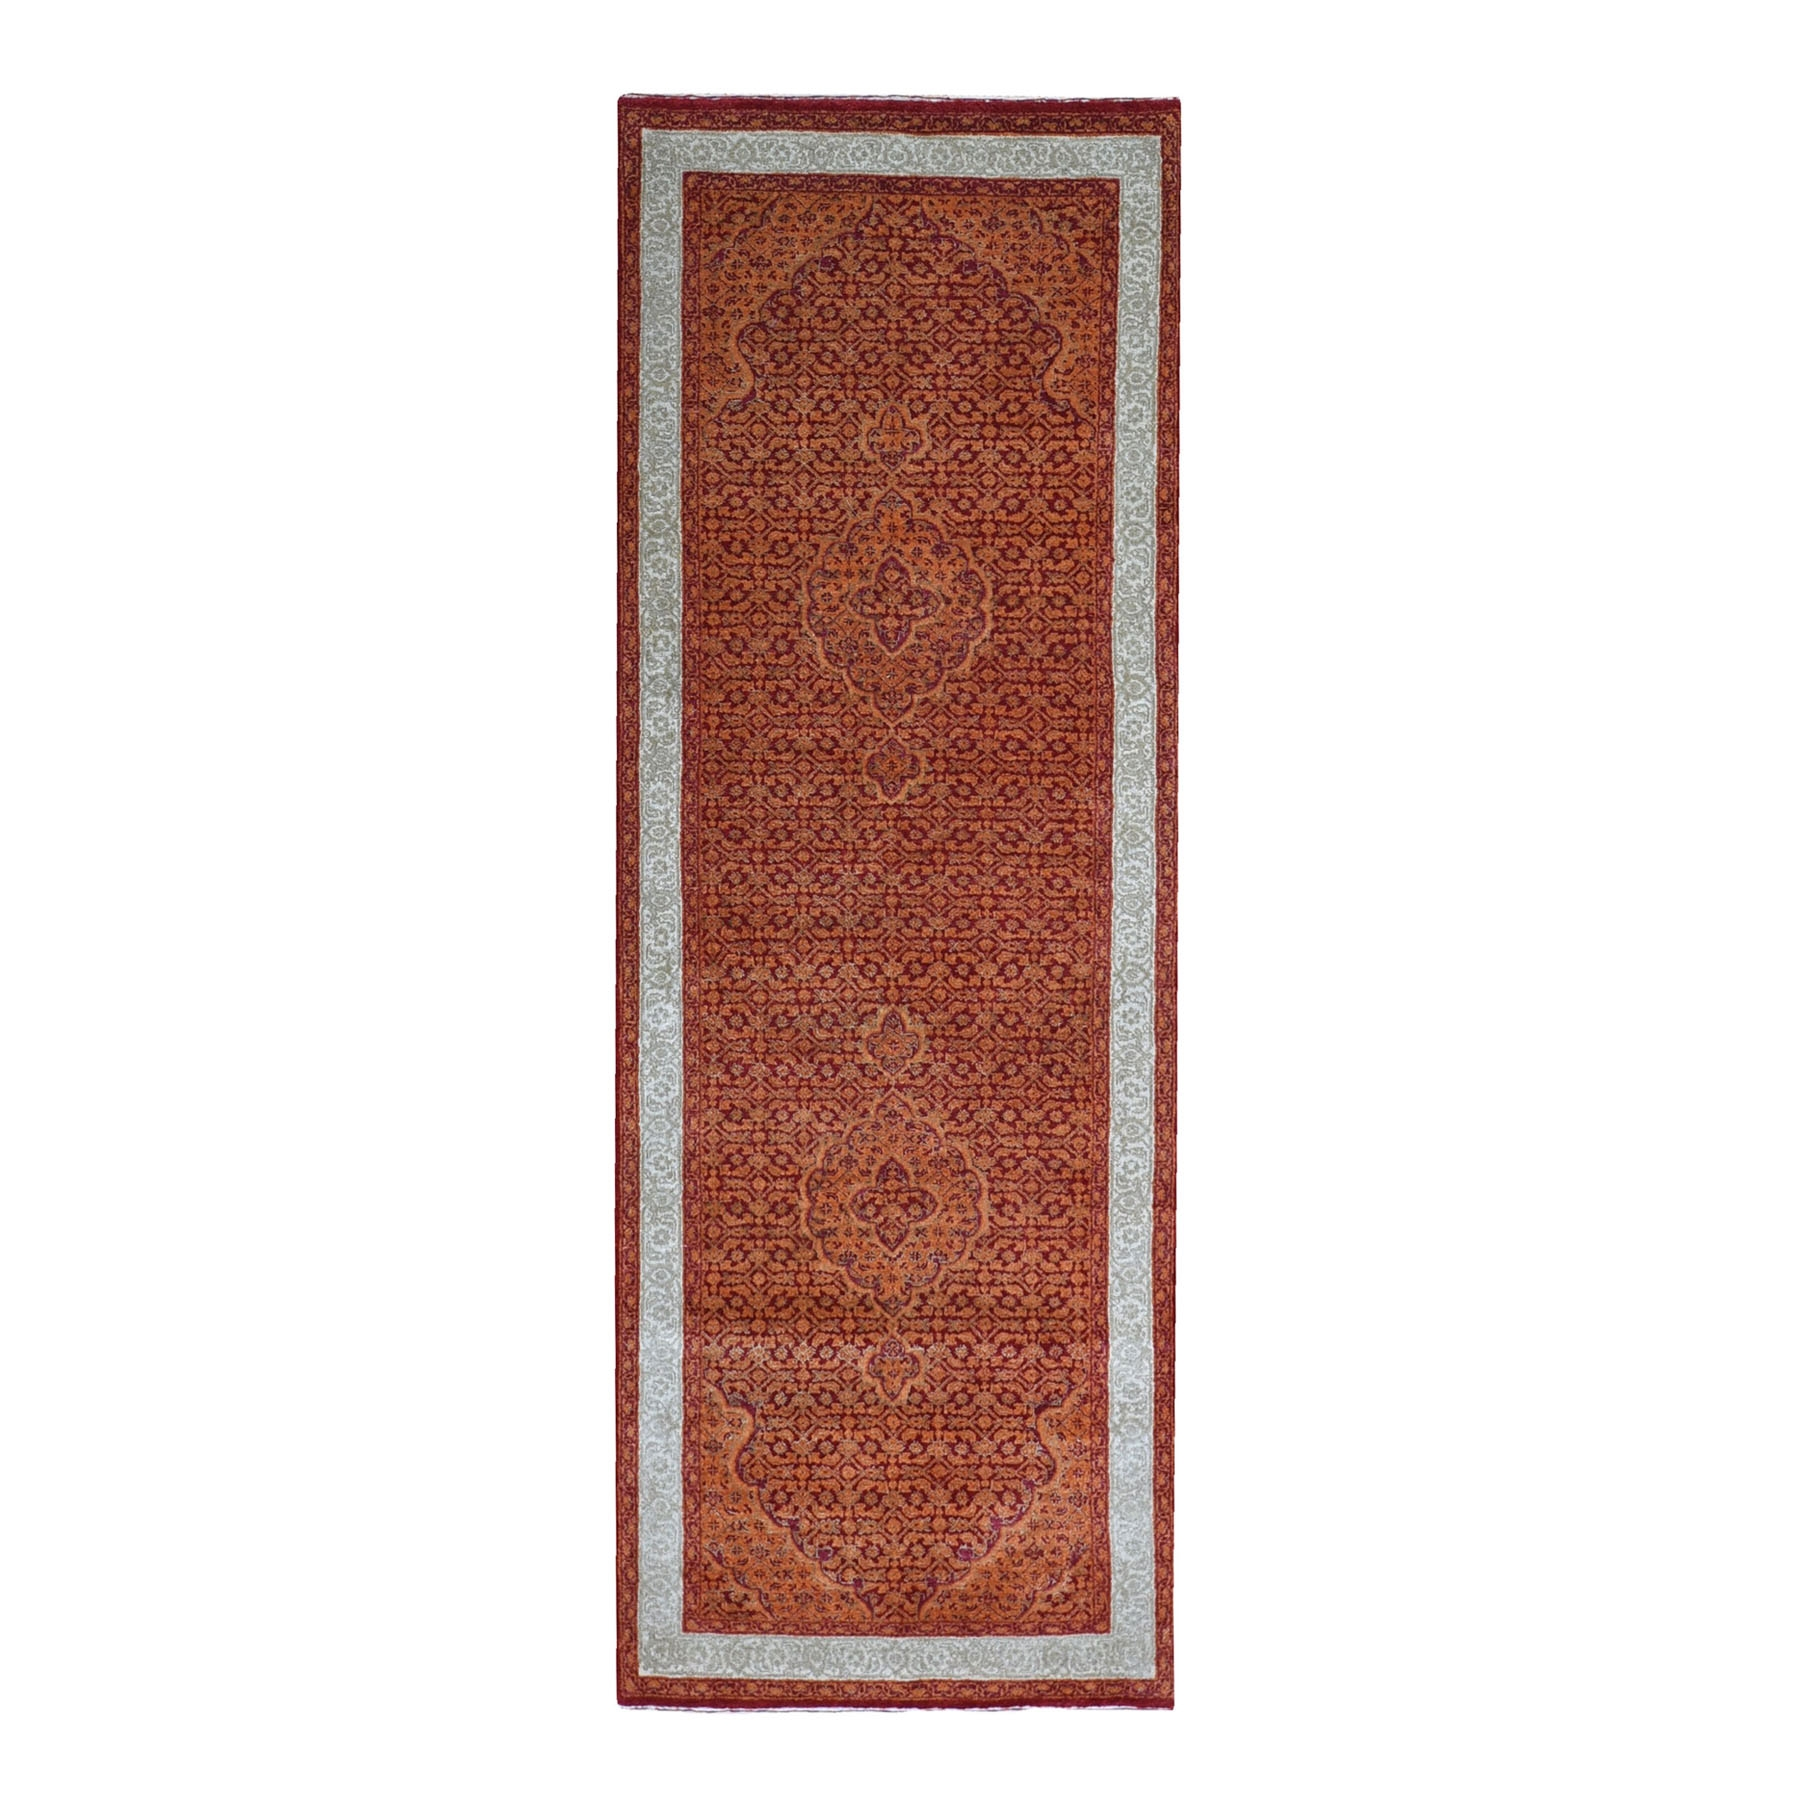 Pirniakan Collection Hand Knotted Orange Rug No: 1119378